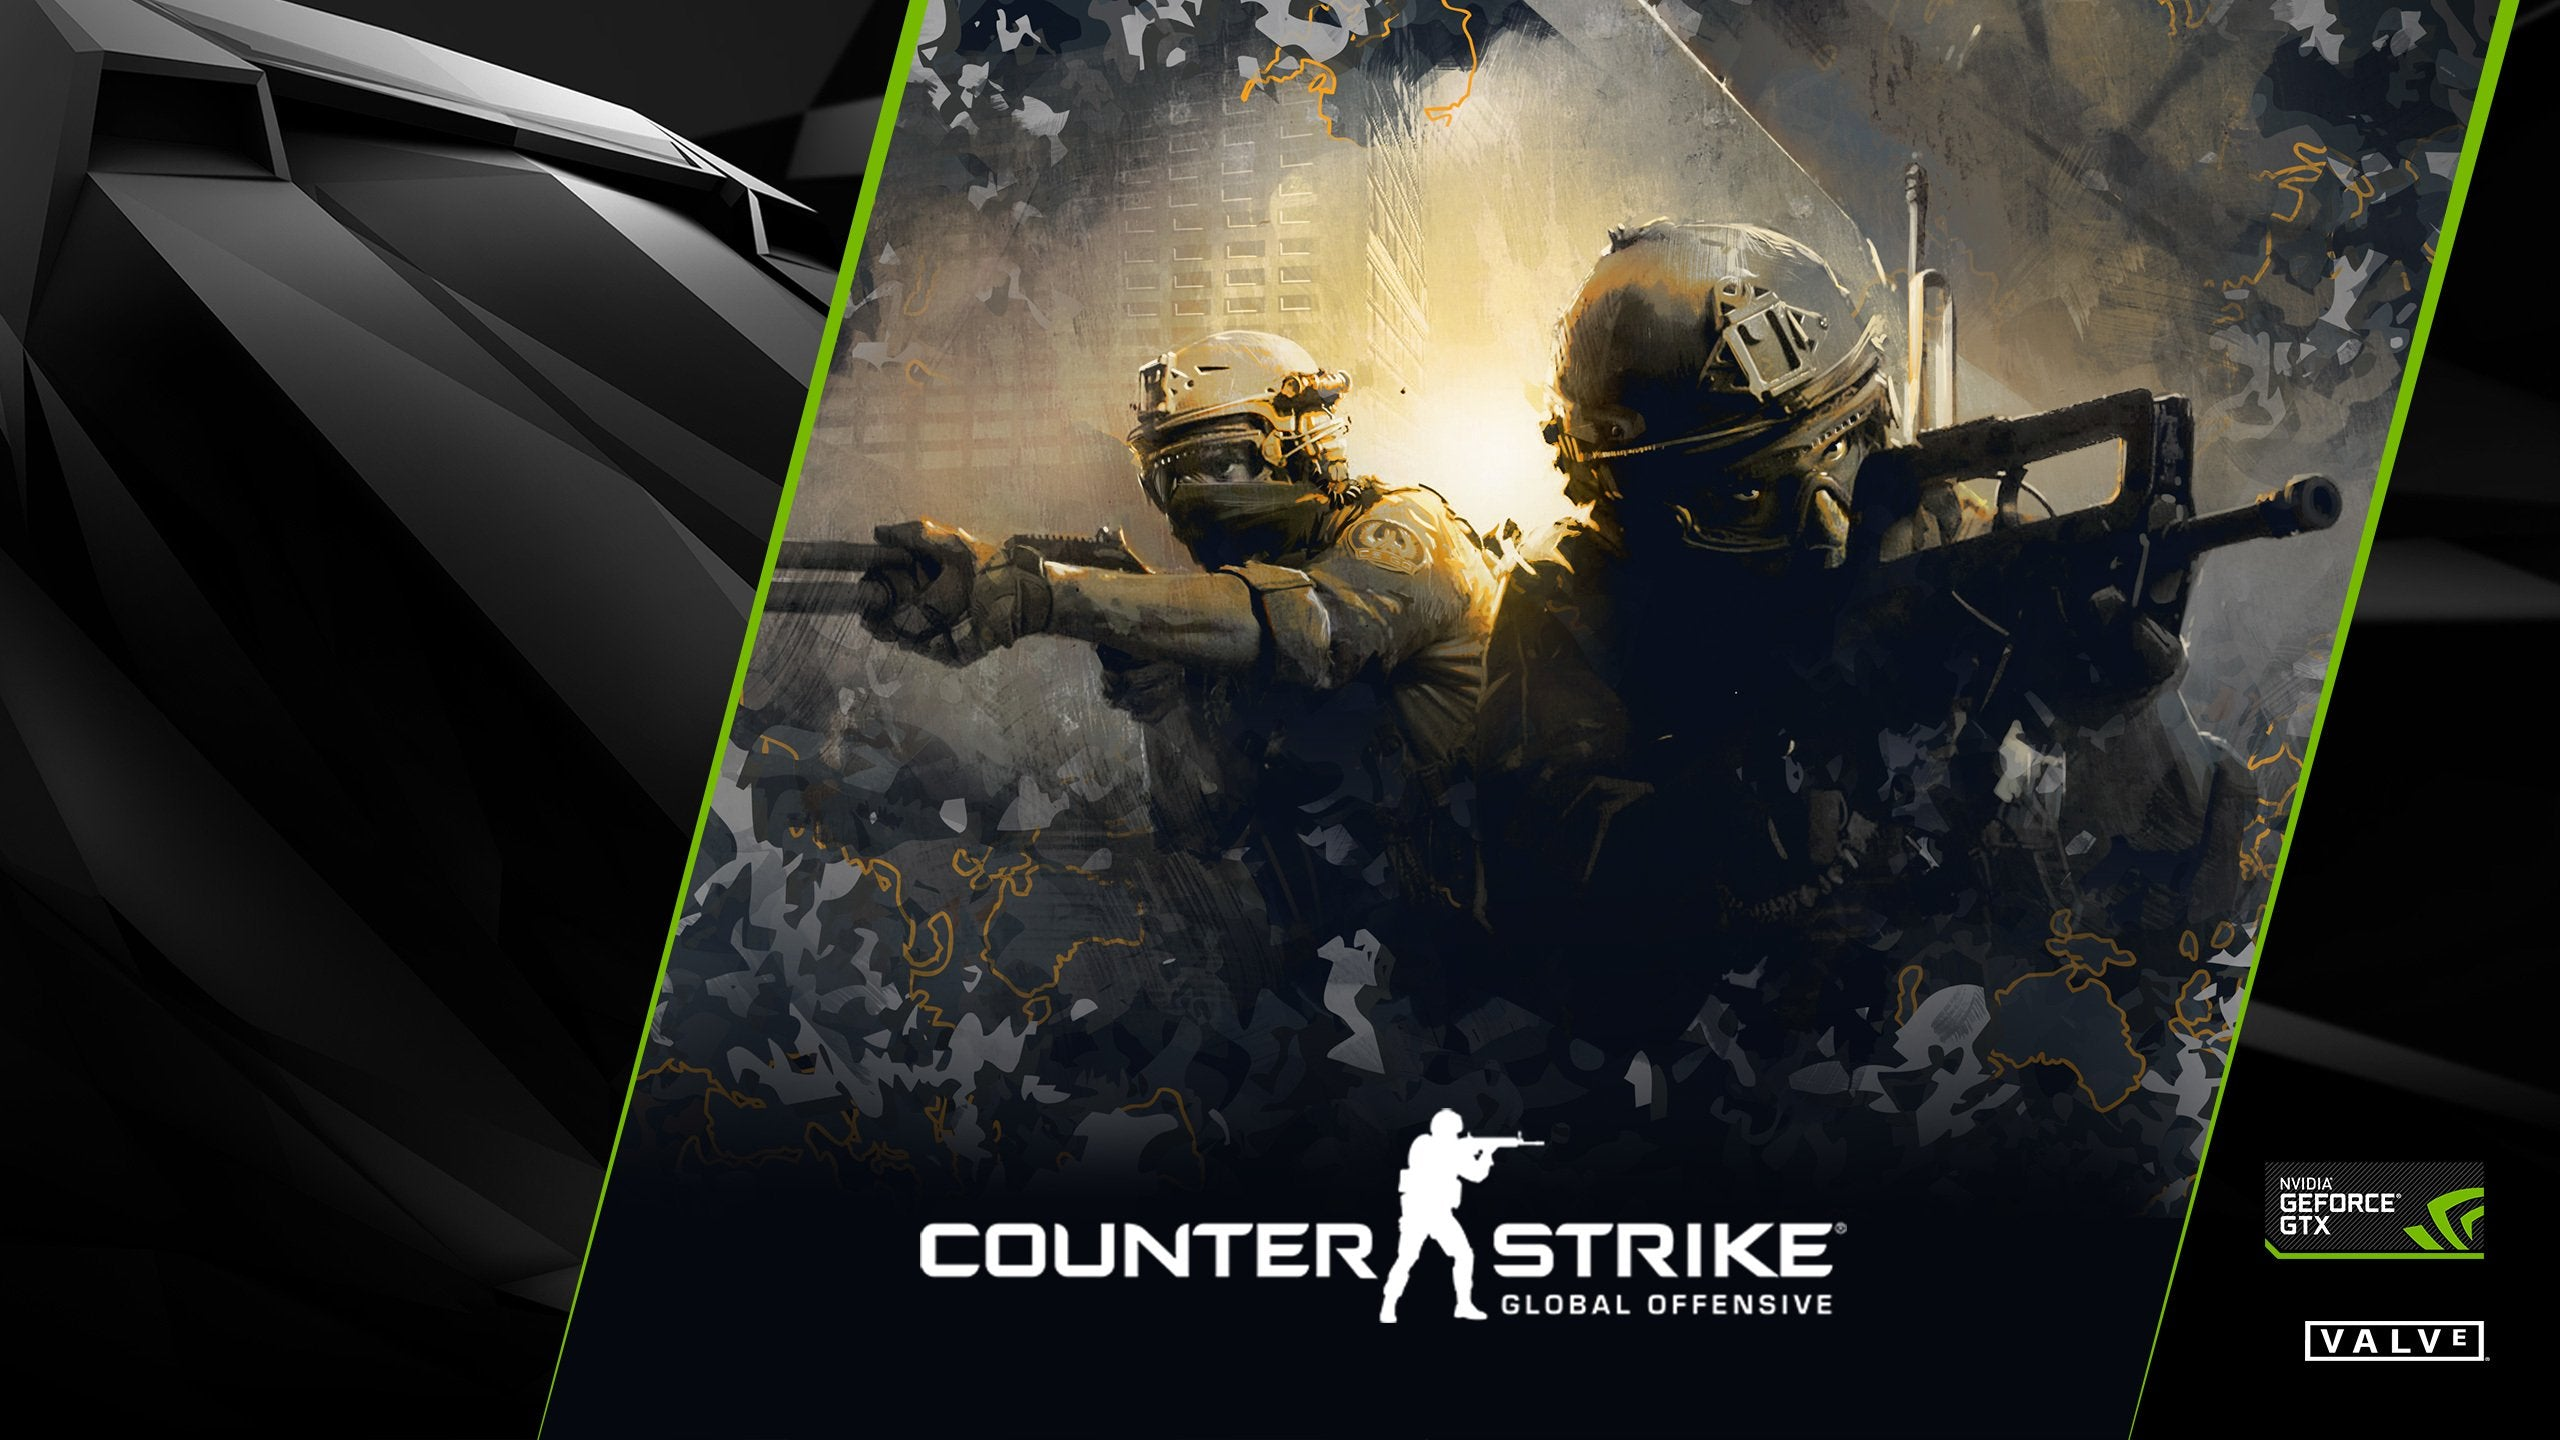 Stylized picture of Counter Strike: Global Offensive counter-terrorists. Counter Strike: Global Offensive, NVIDIA GeForce GTX, and Valve logos